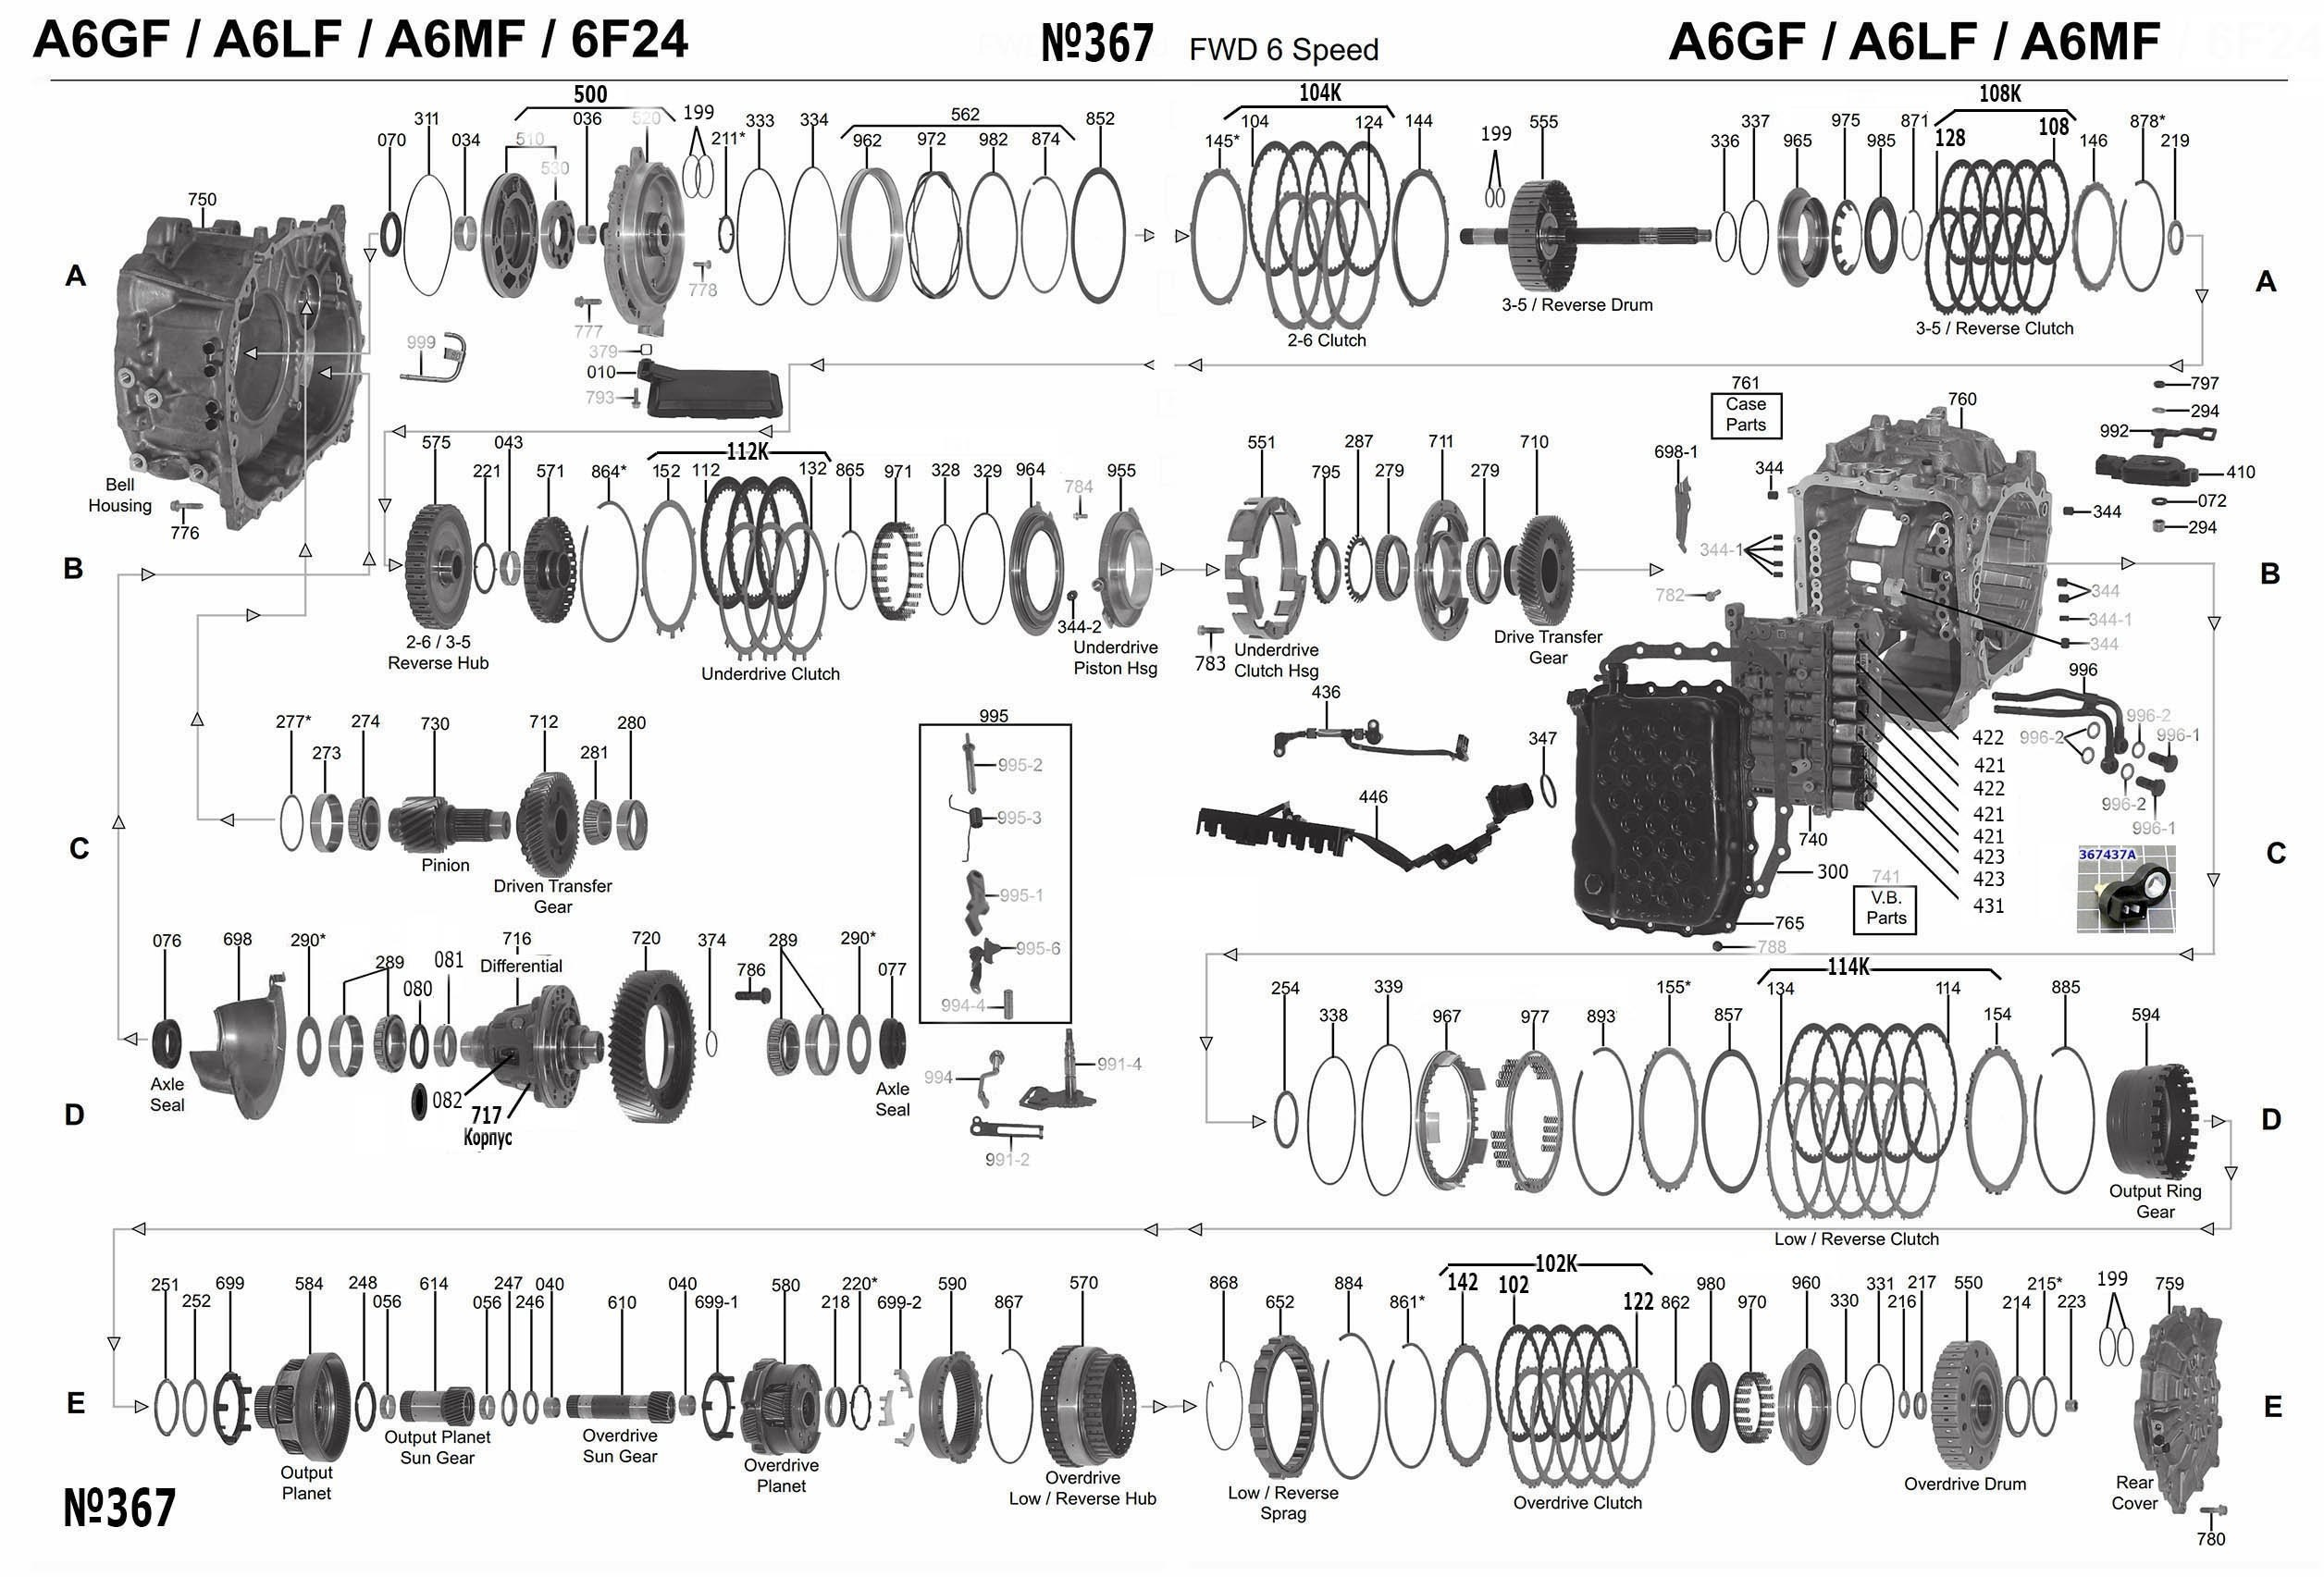 A6LF1 Transmission parts, repair guidelines, problems, manuals